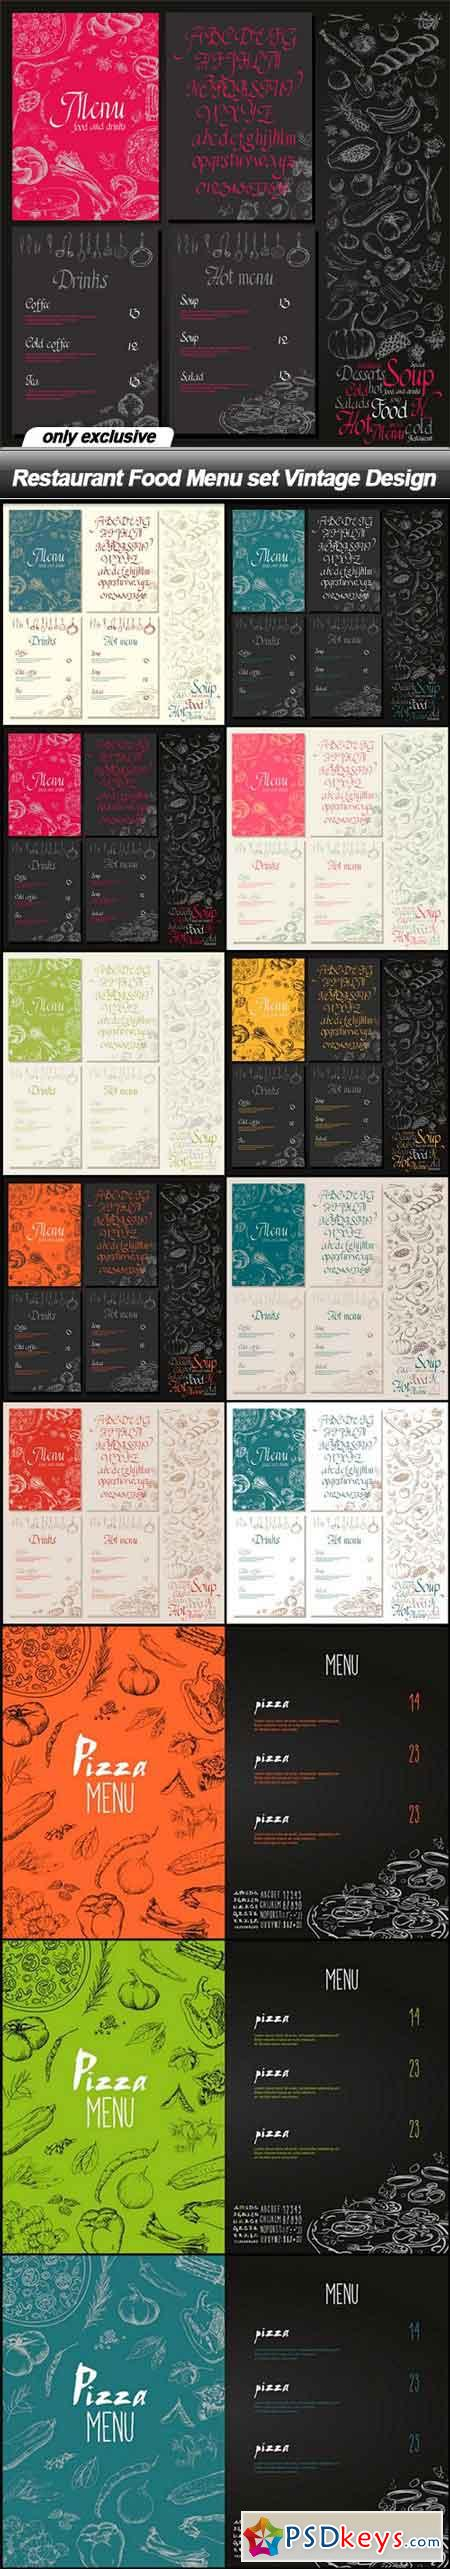 Restaurant Food Menu set Vintage Design - 13 EPS